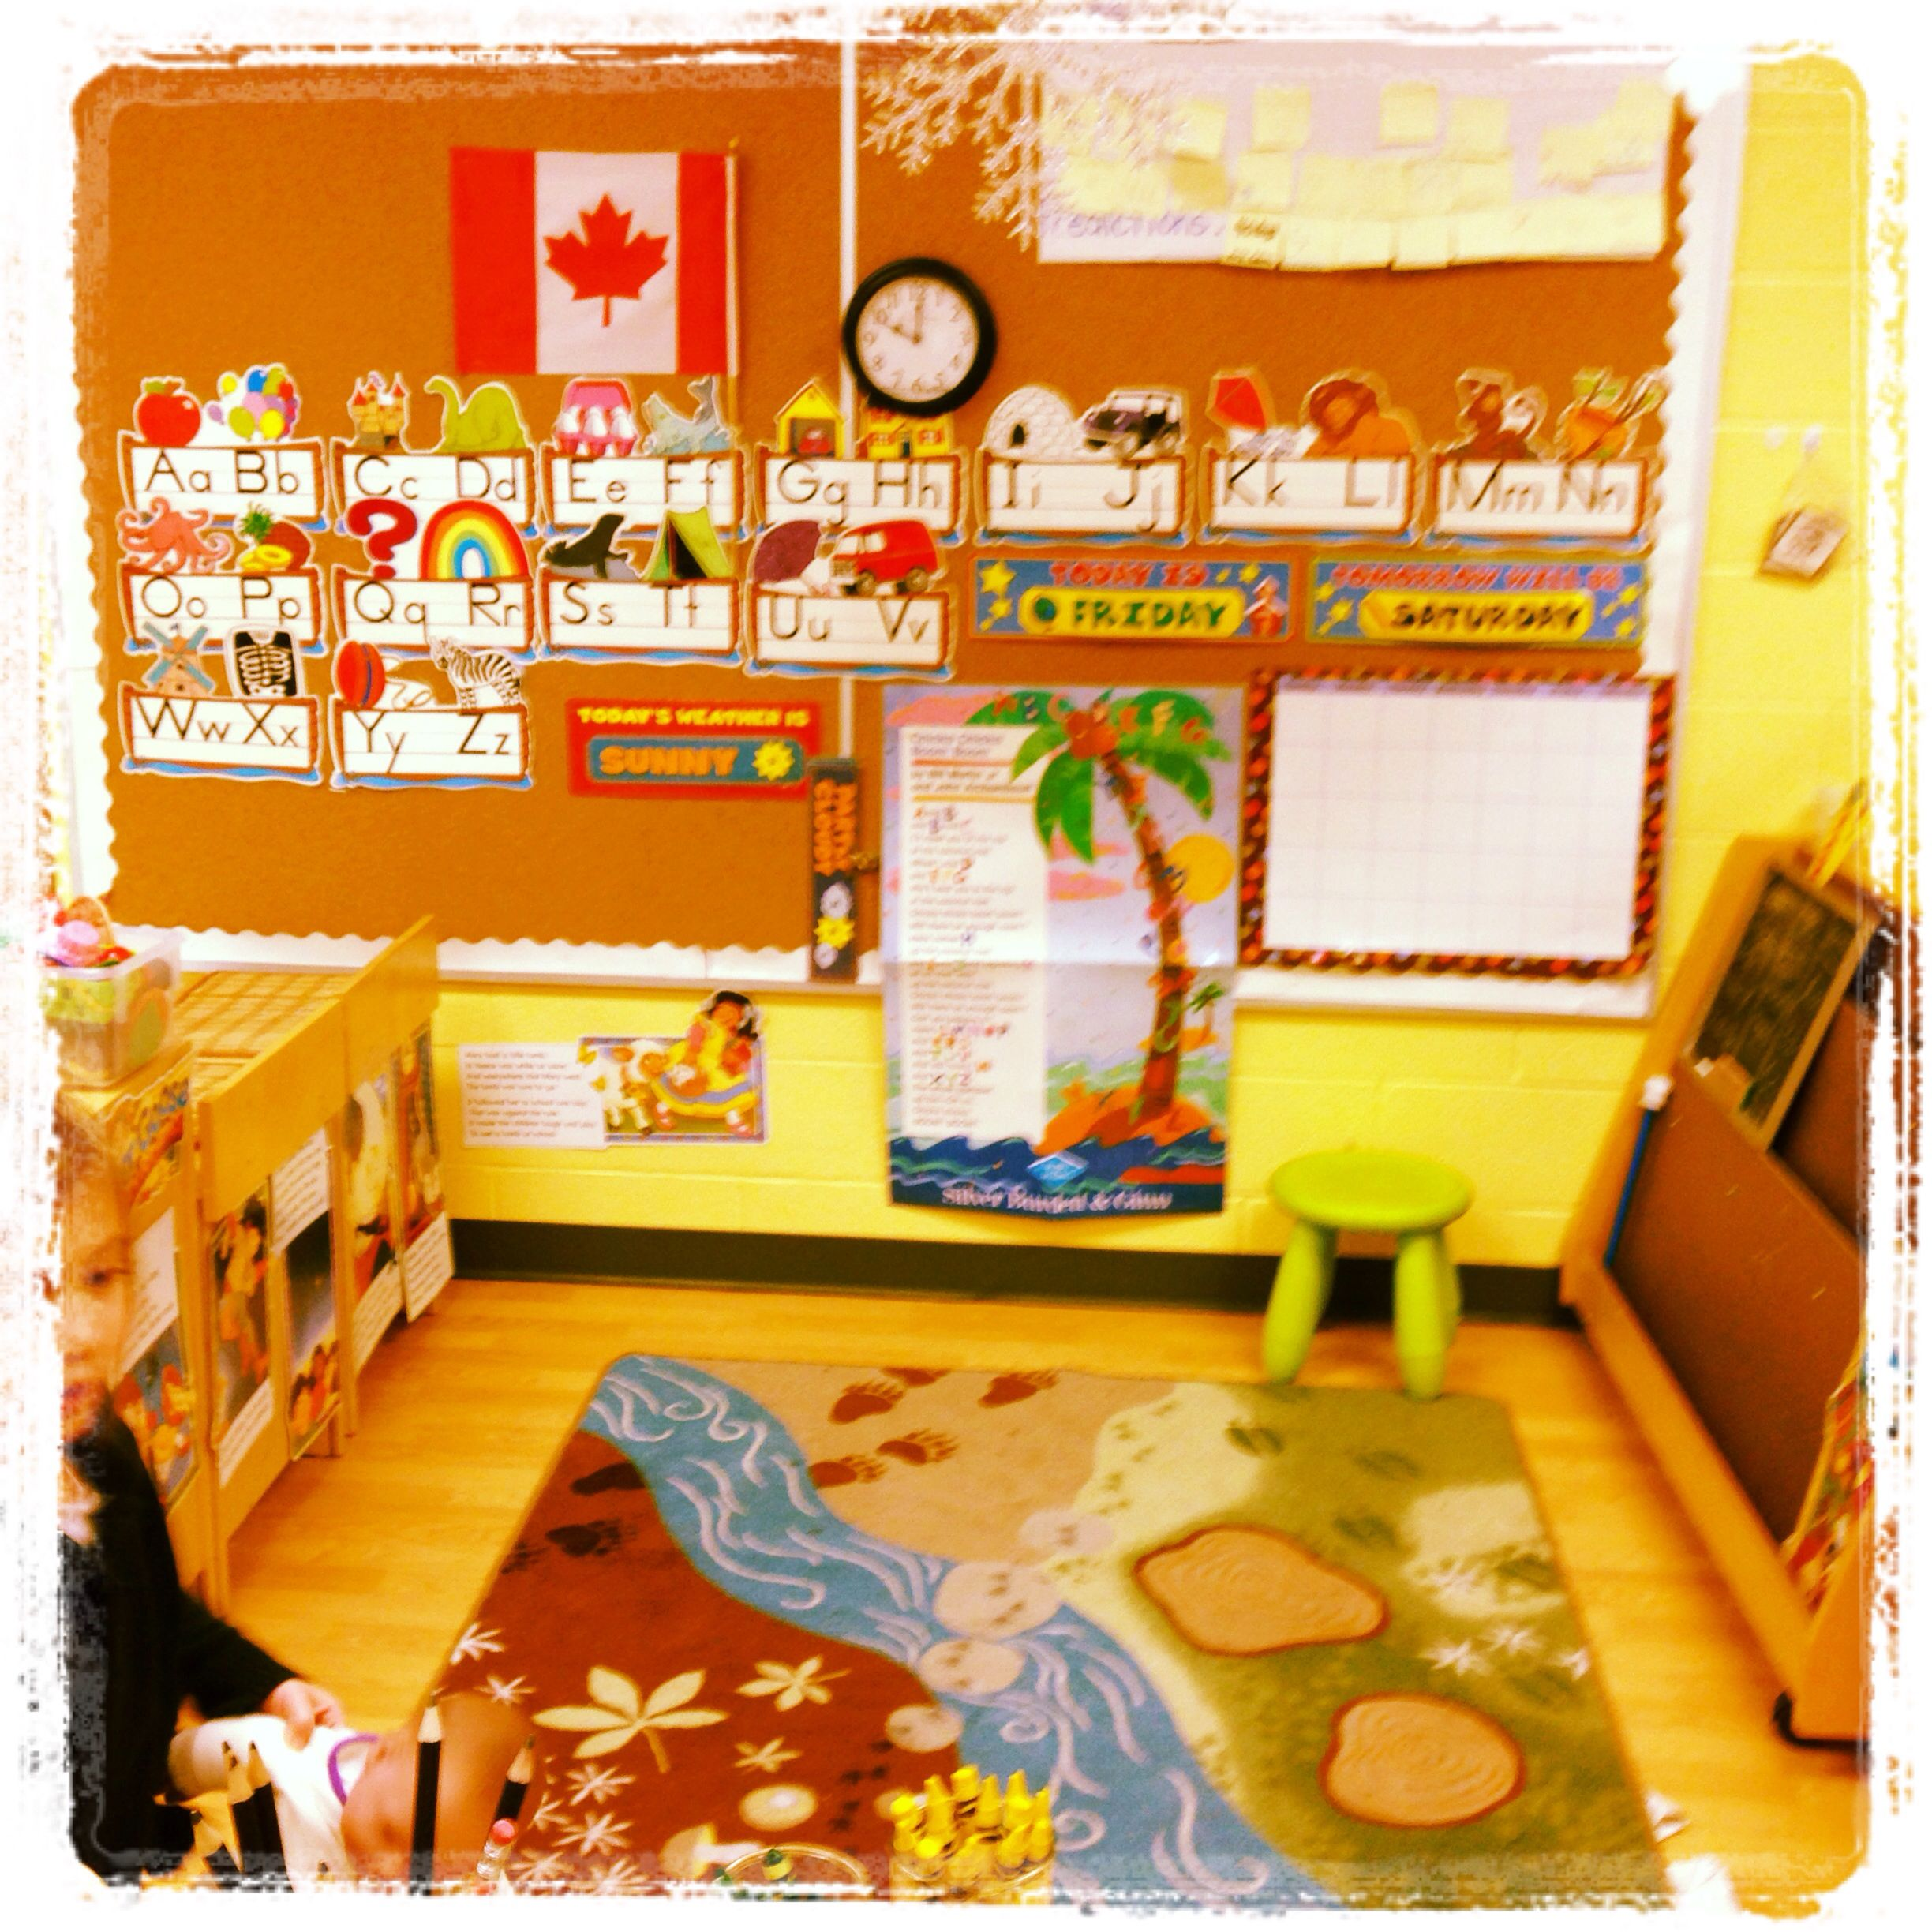 Dramatic play centre based on an early 21st century classroom.